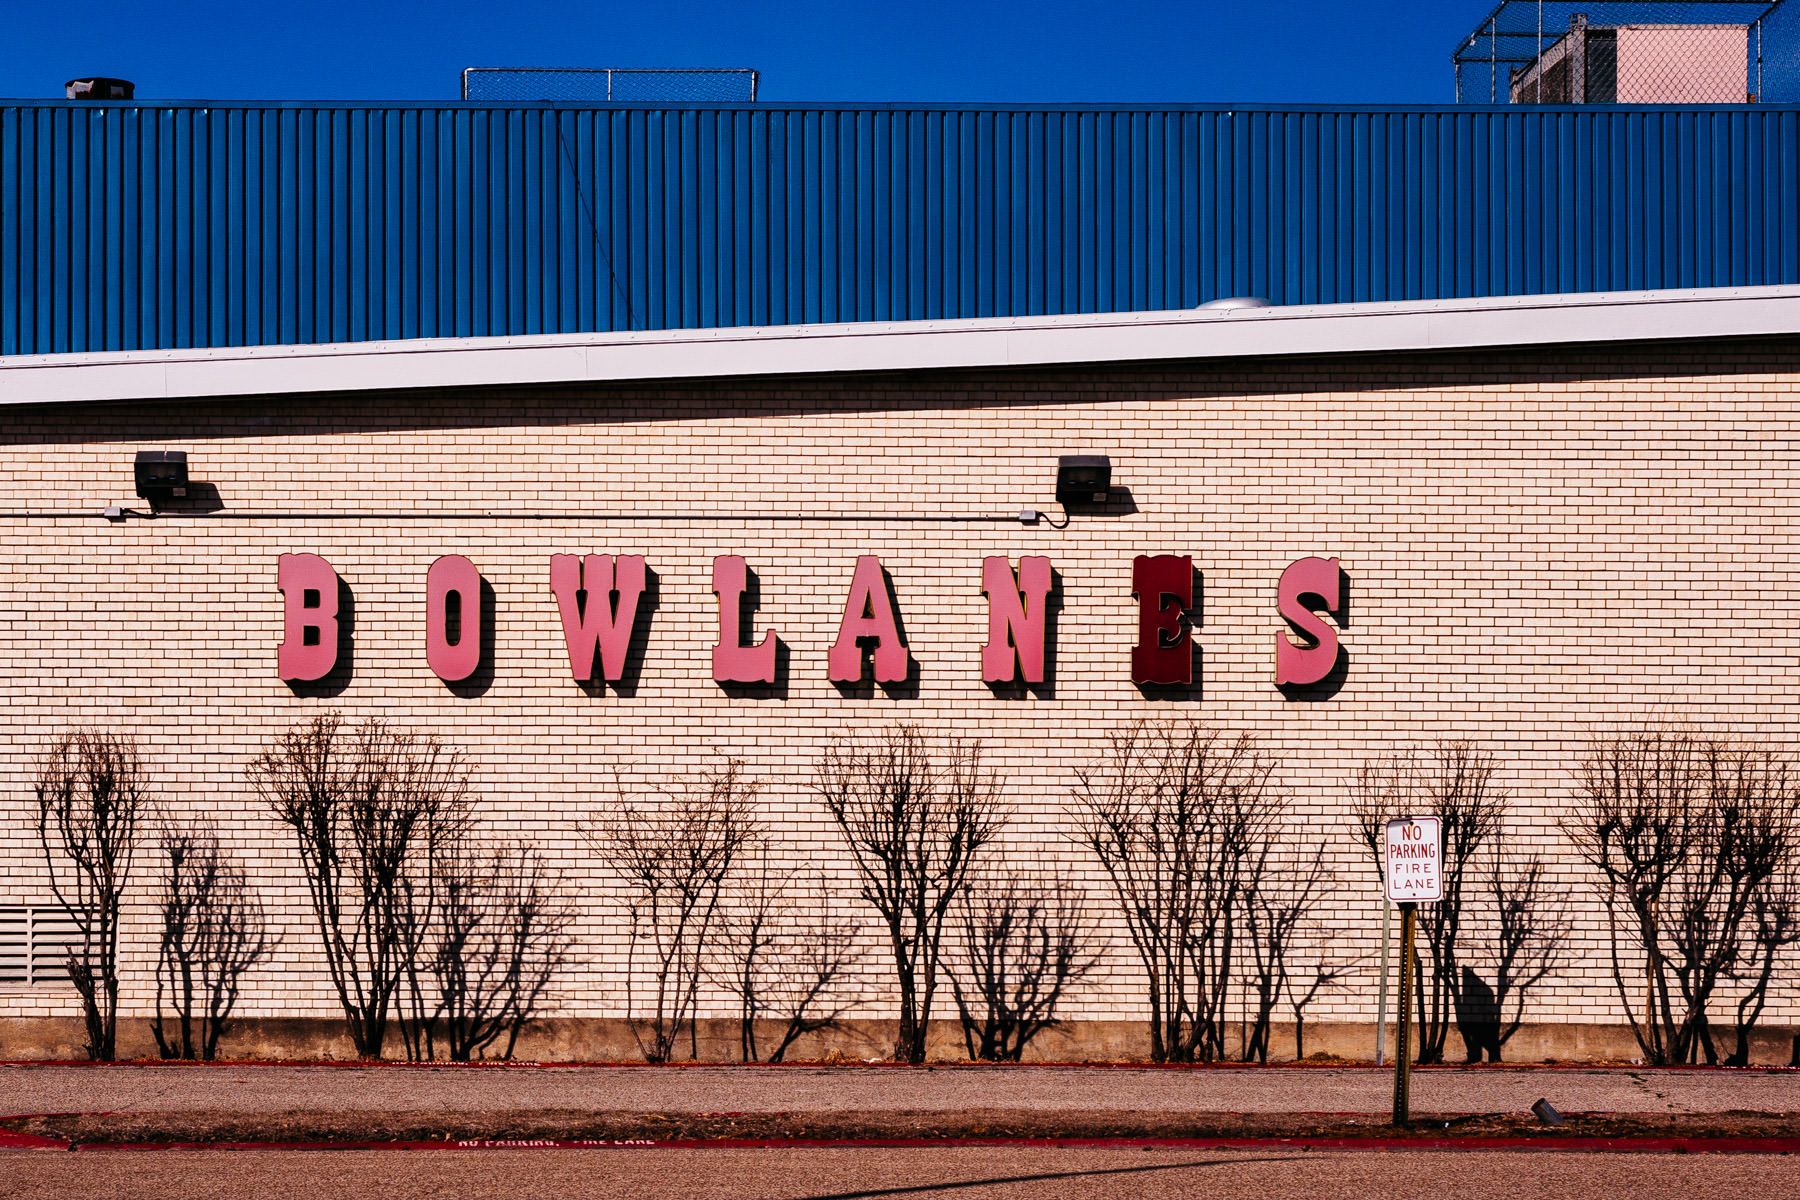 The abandoned Big Town Bowlanes bowling alley in Mesquite, Texas.